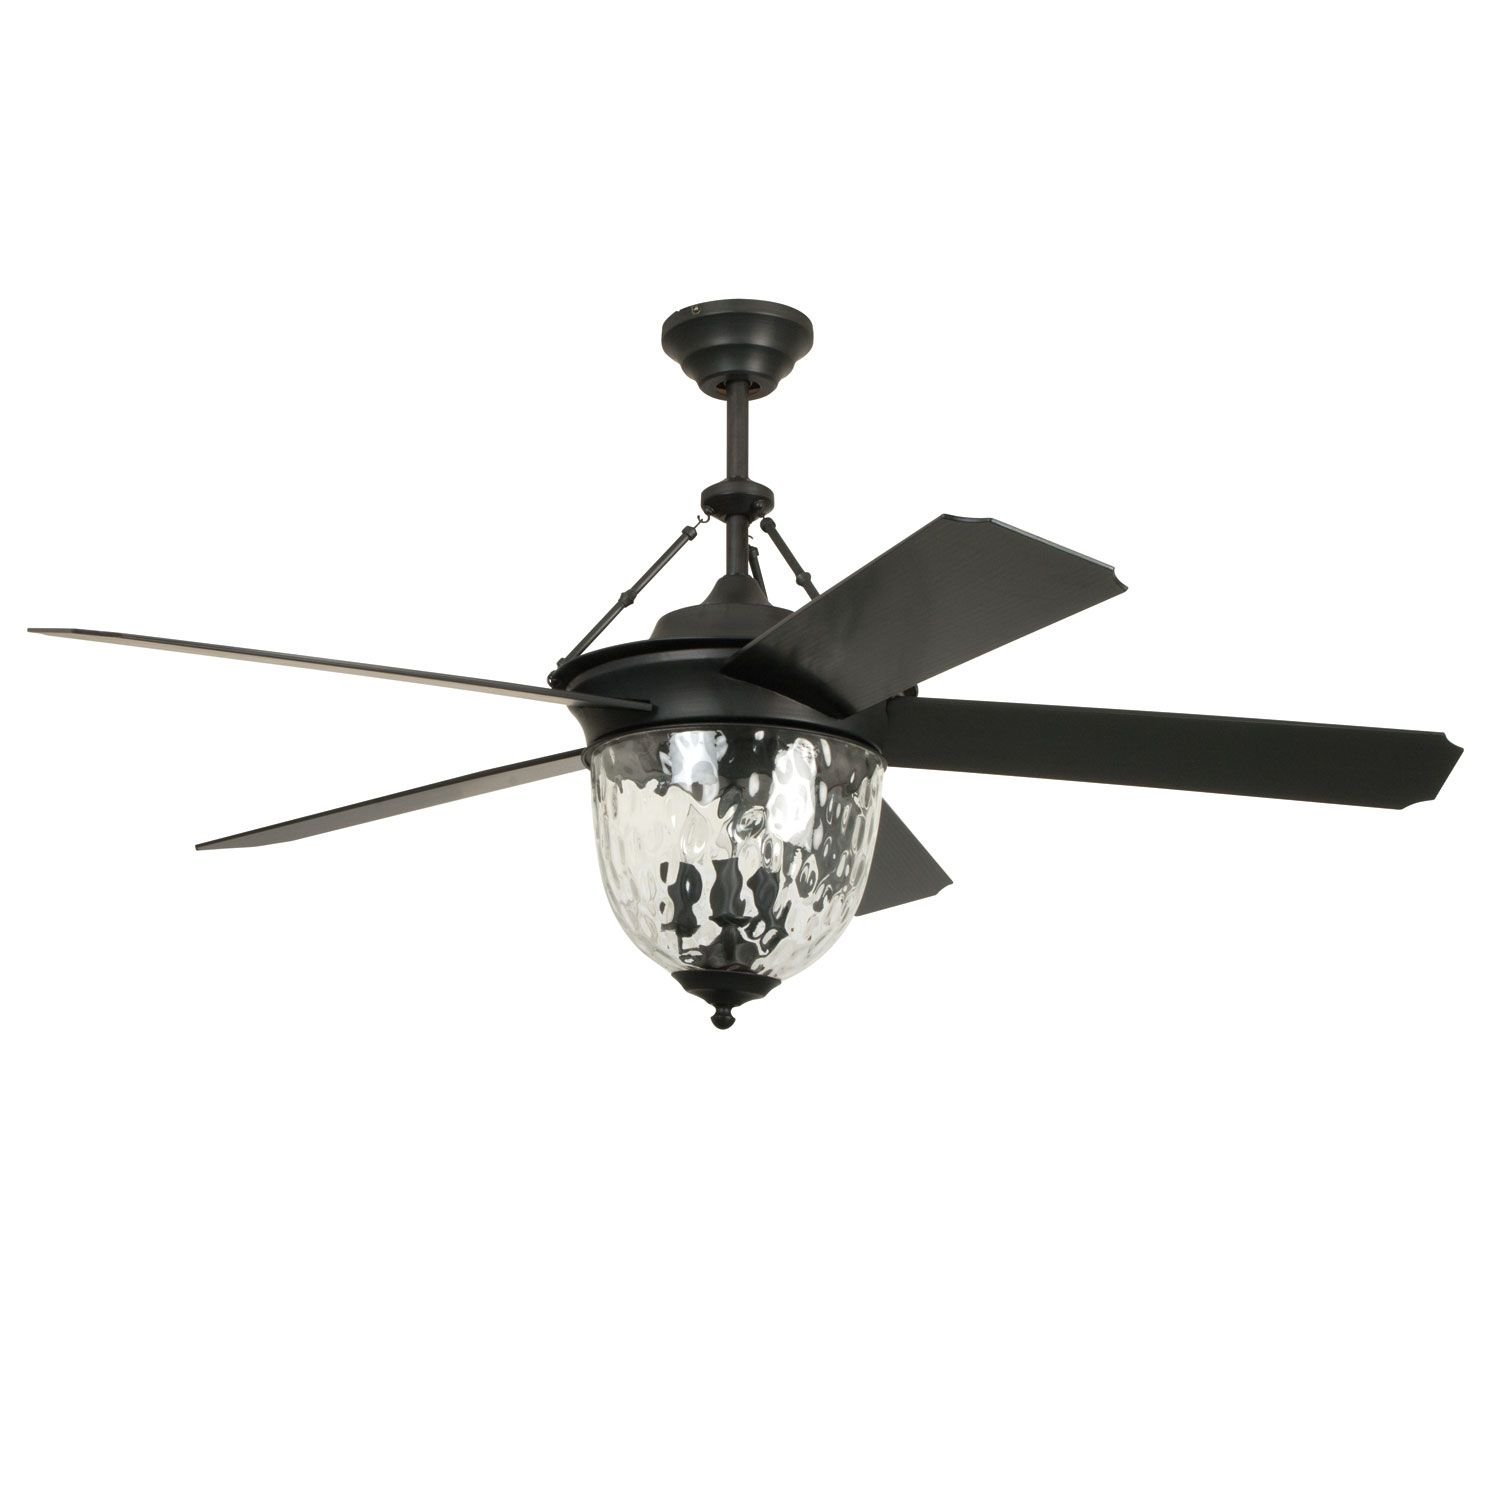 Craftmade Cavalier Aged Bronze Brushed 52 Inch Outdoor Ceiling Fan